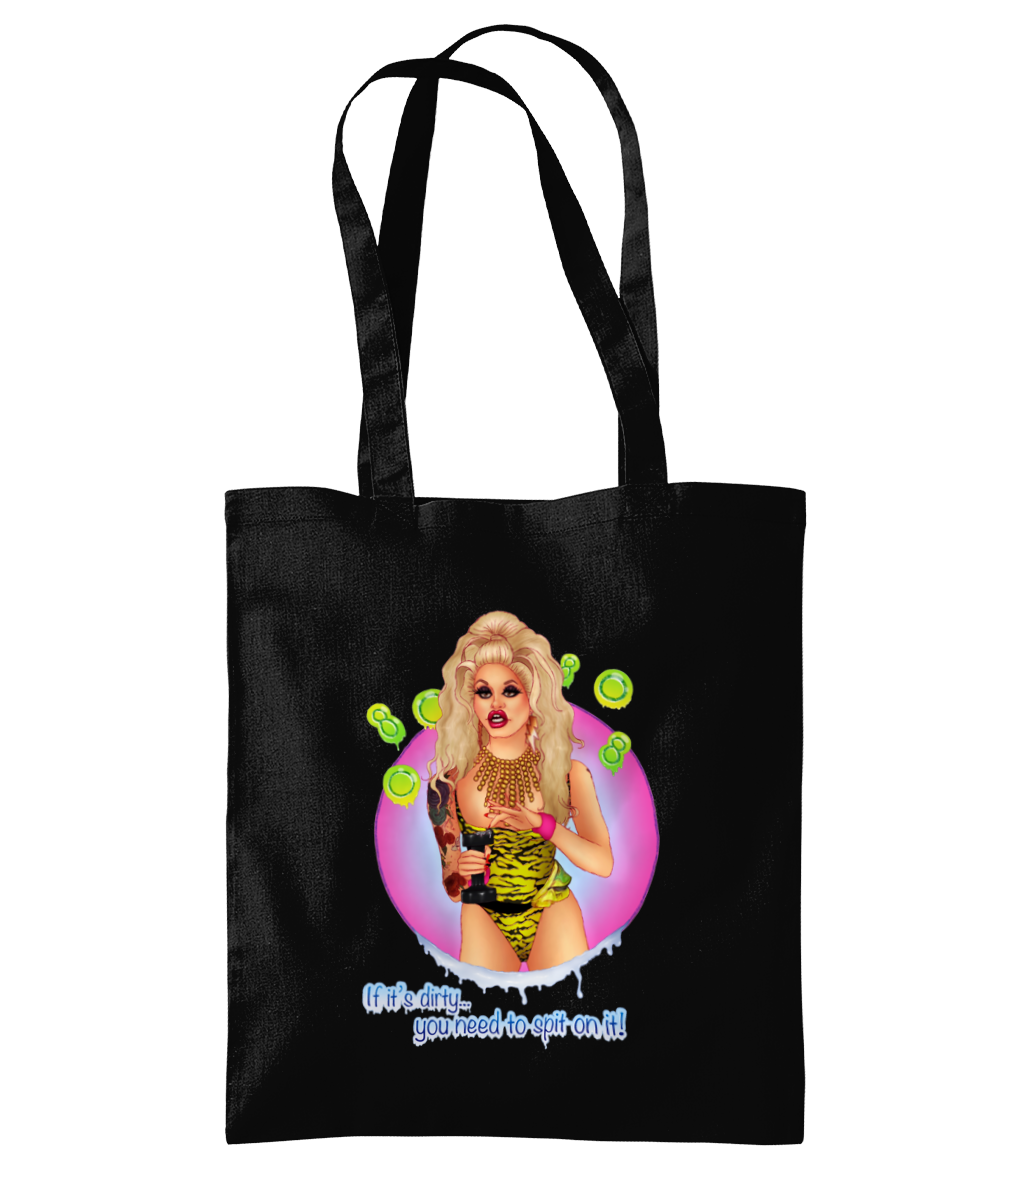 Megan Schoonbrood - If It's Dirty Tote Bag